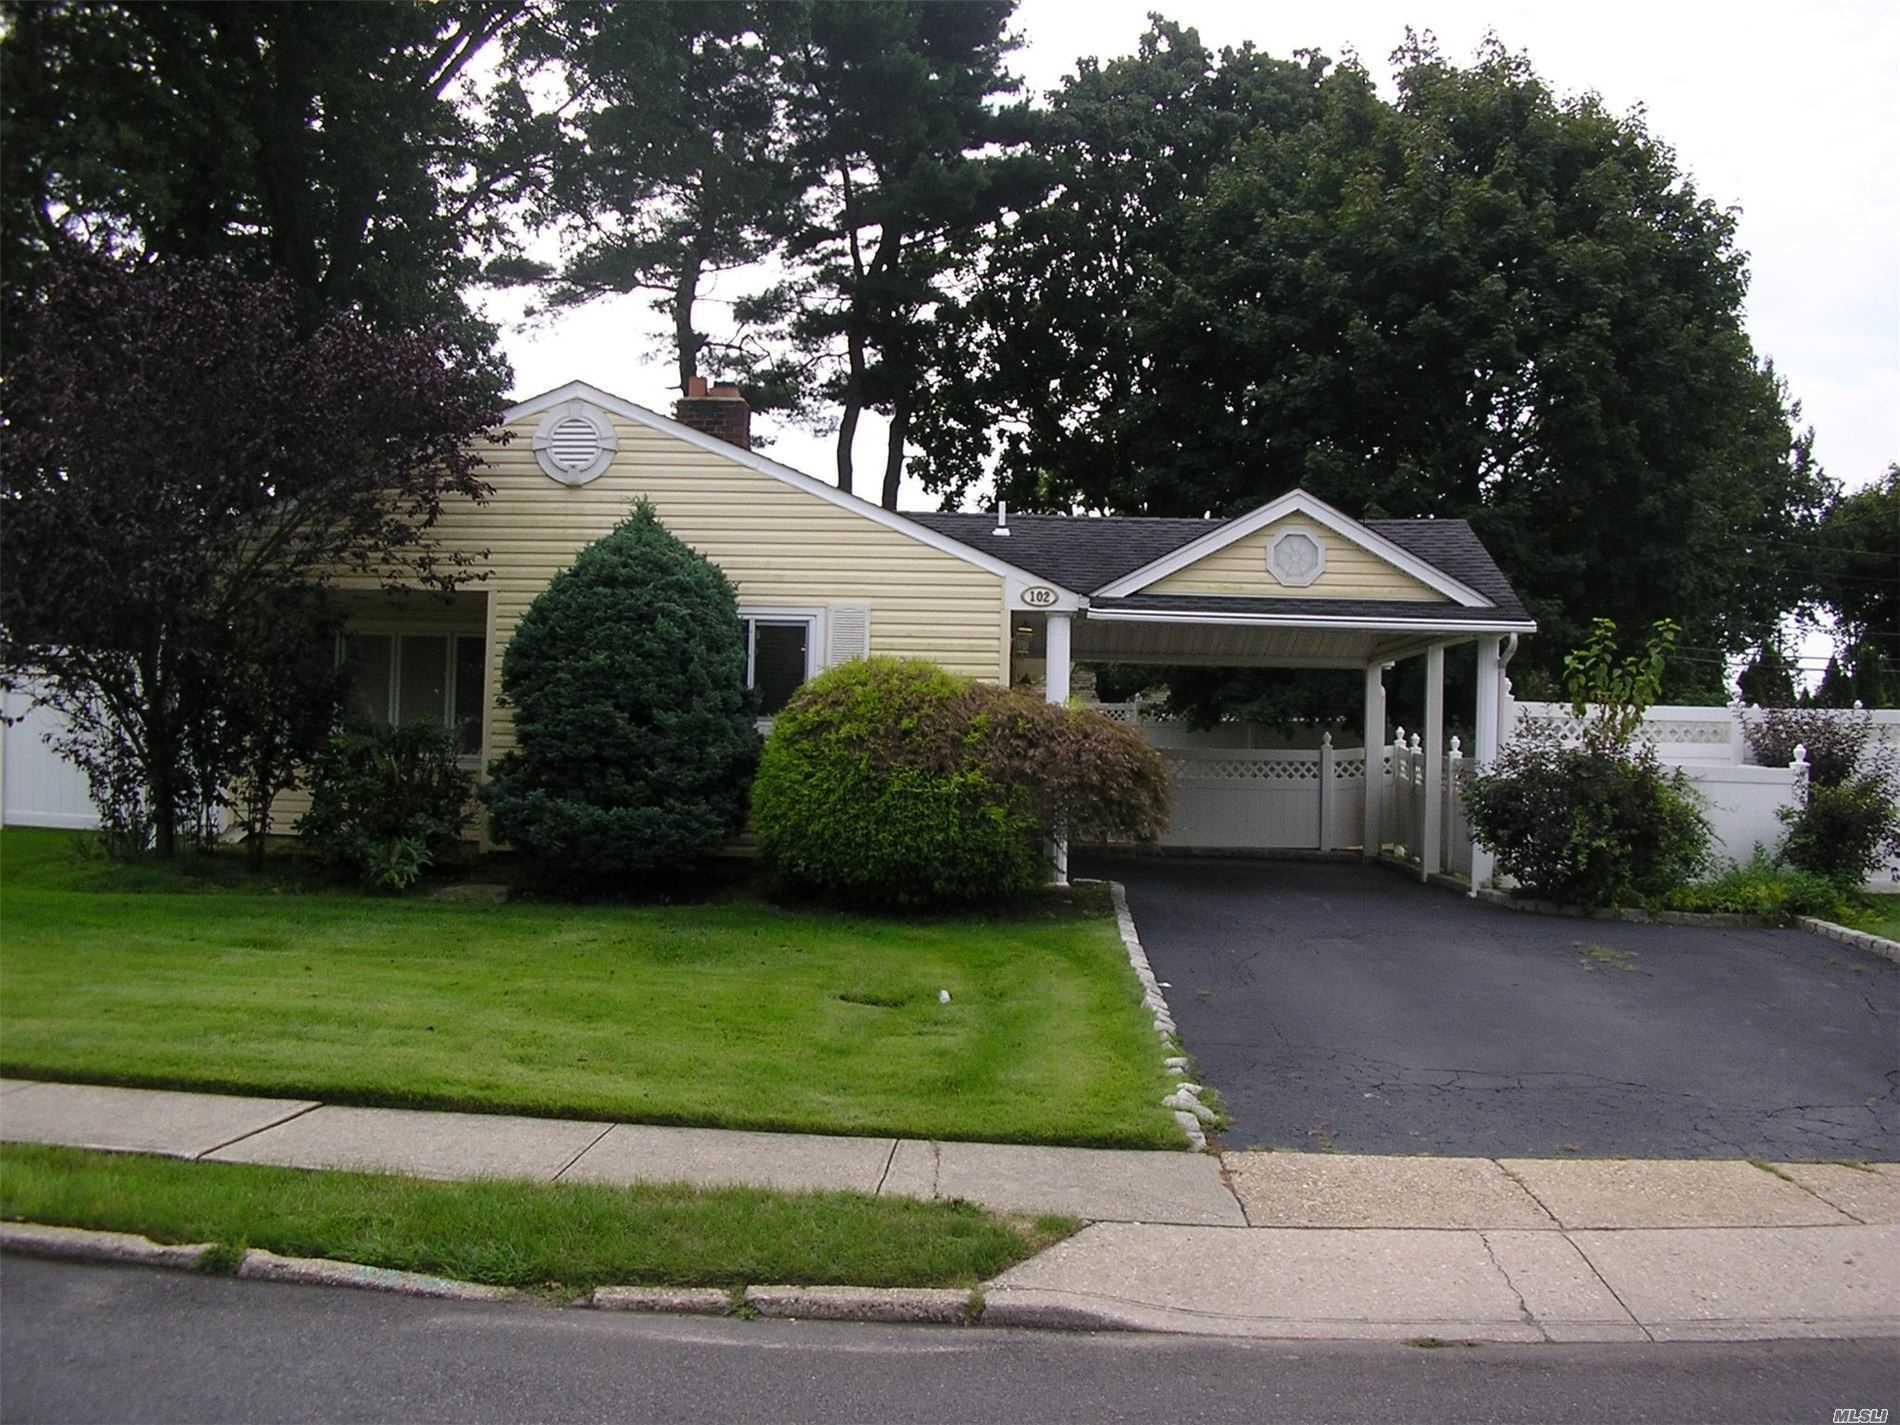 102 Southwood Cir - Syosset, New York